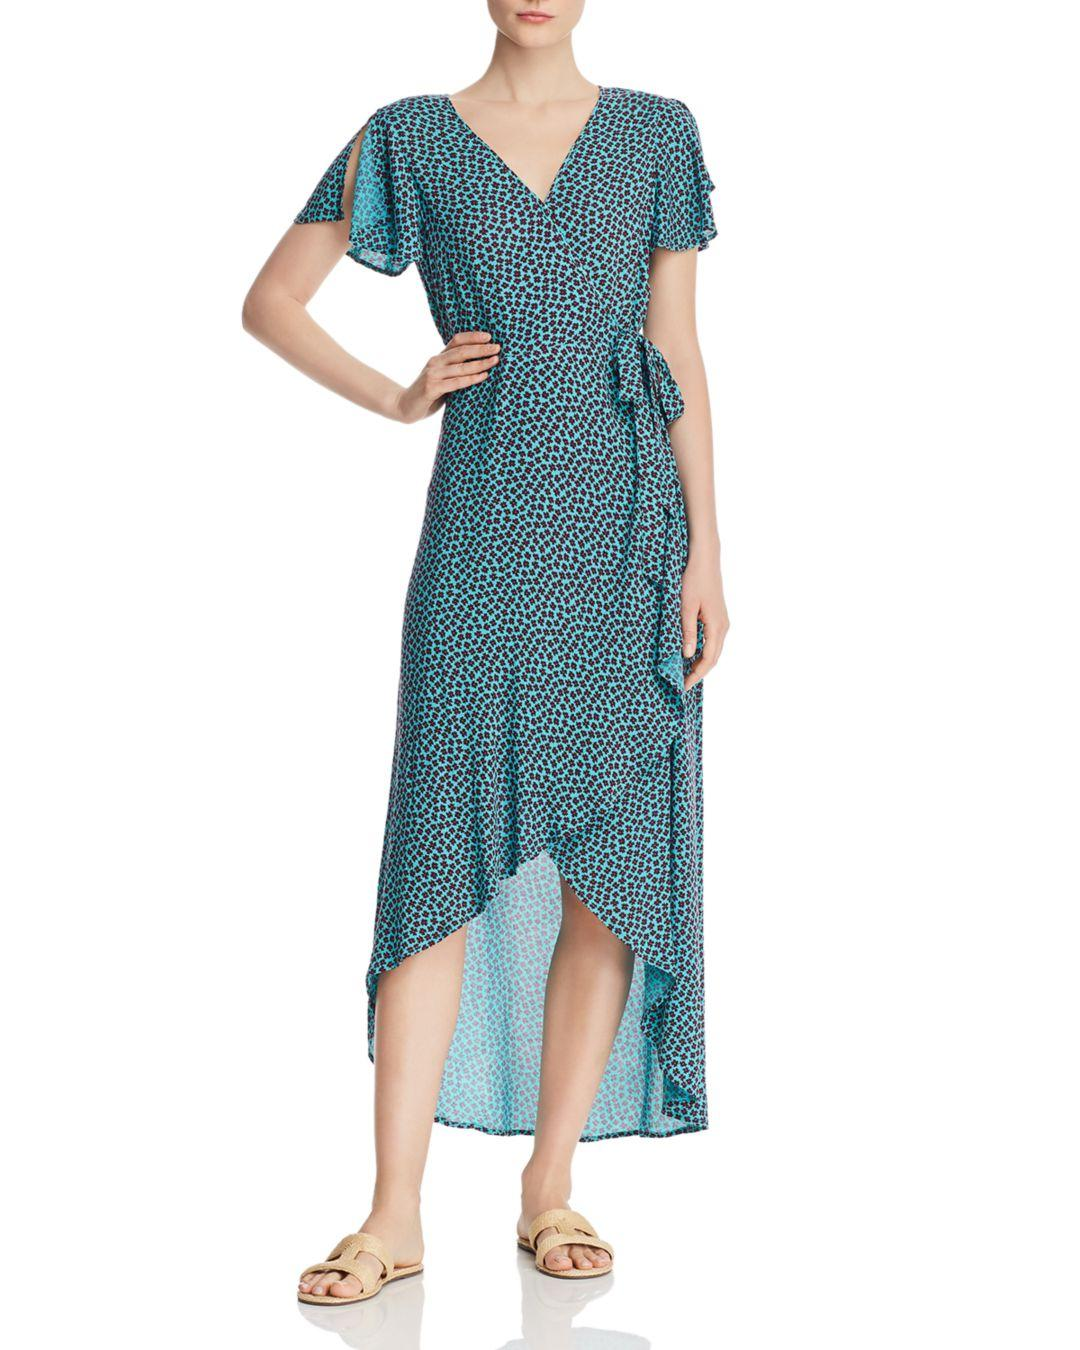 ecb3b177794 Lyst - Band Of Gypsies Martinique Floral Maxi Wrap Dress in Blue